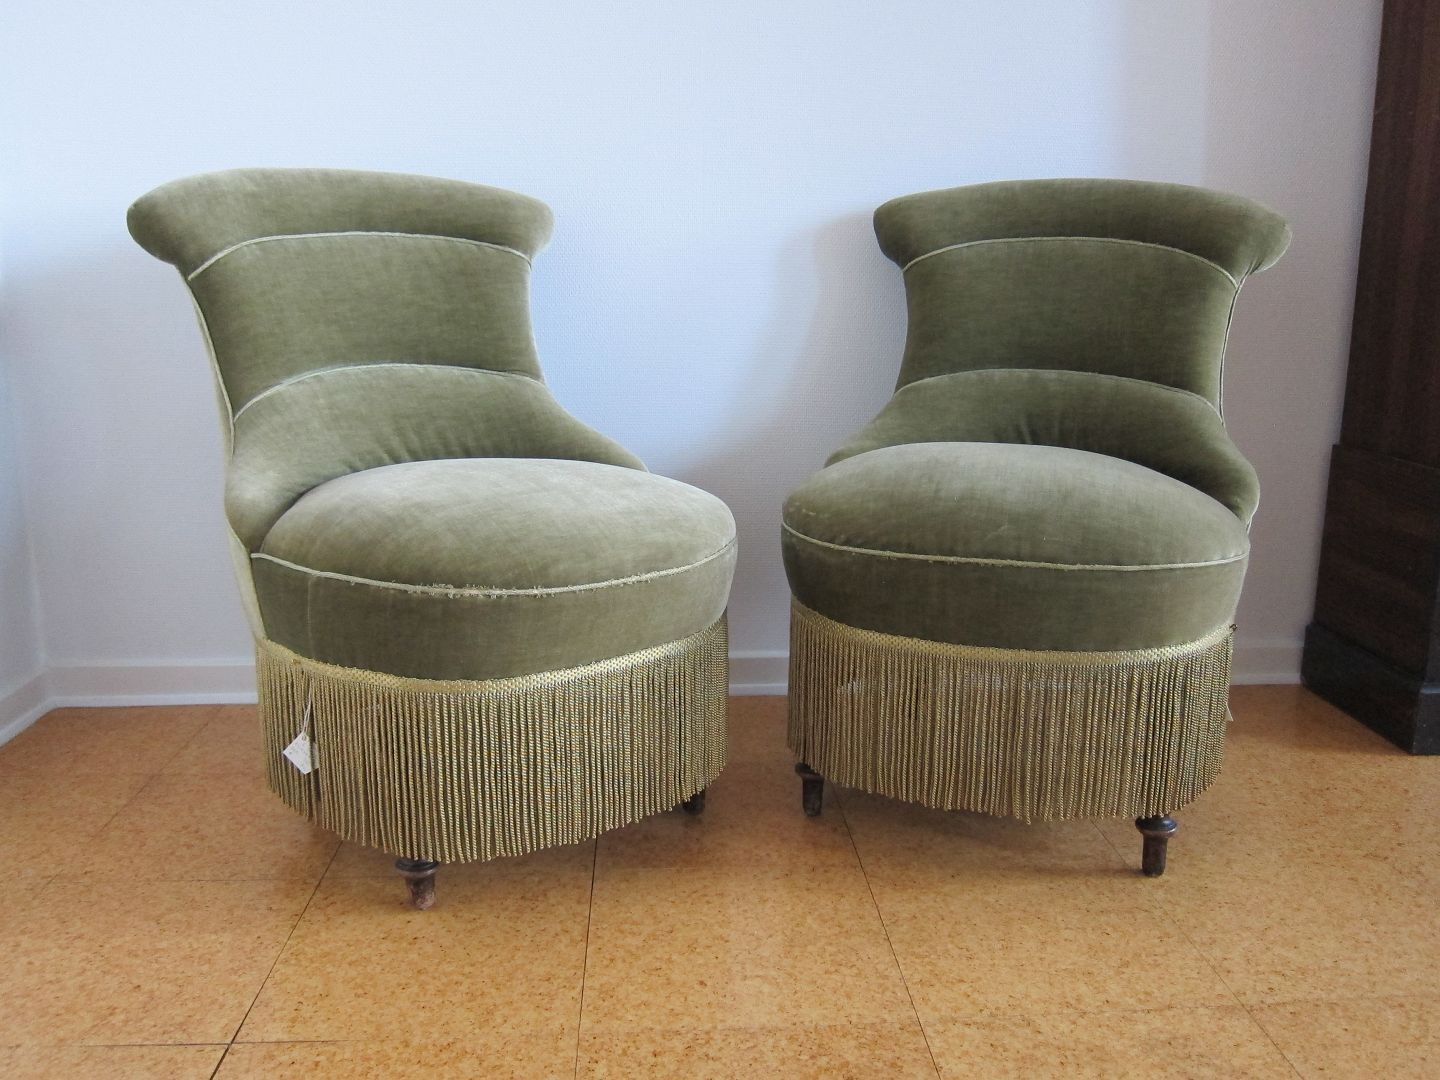 Exceptional Easy Chair. A Pair Of 2 Old, And Small Easy Chairs. Both In A Good  Condition. The Price Is For Both Chairs As A Set